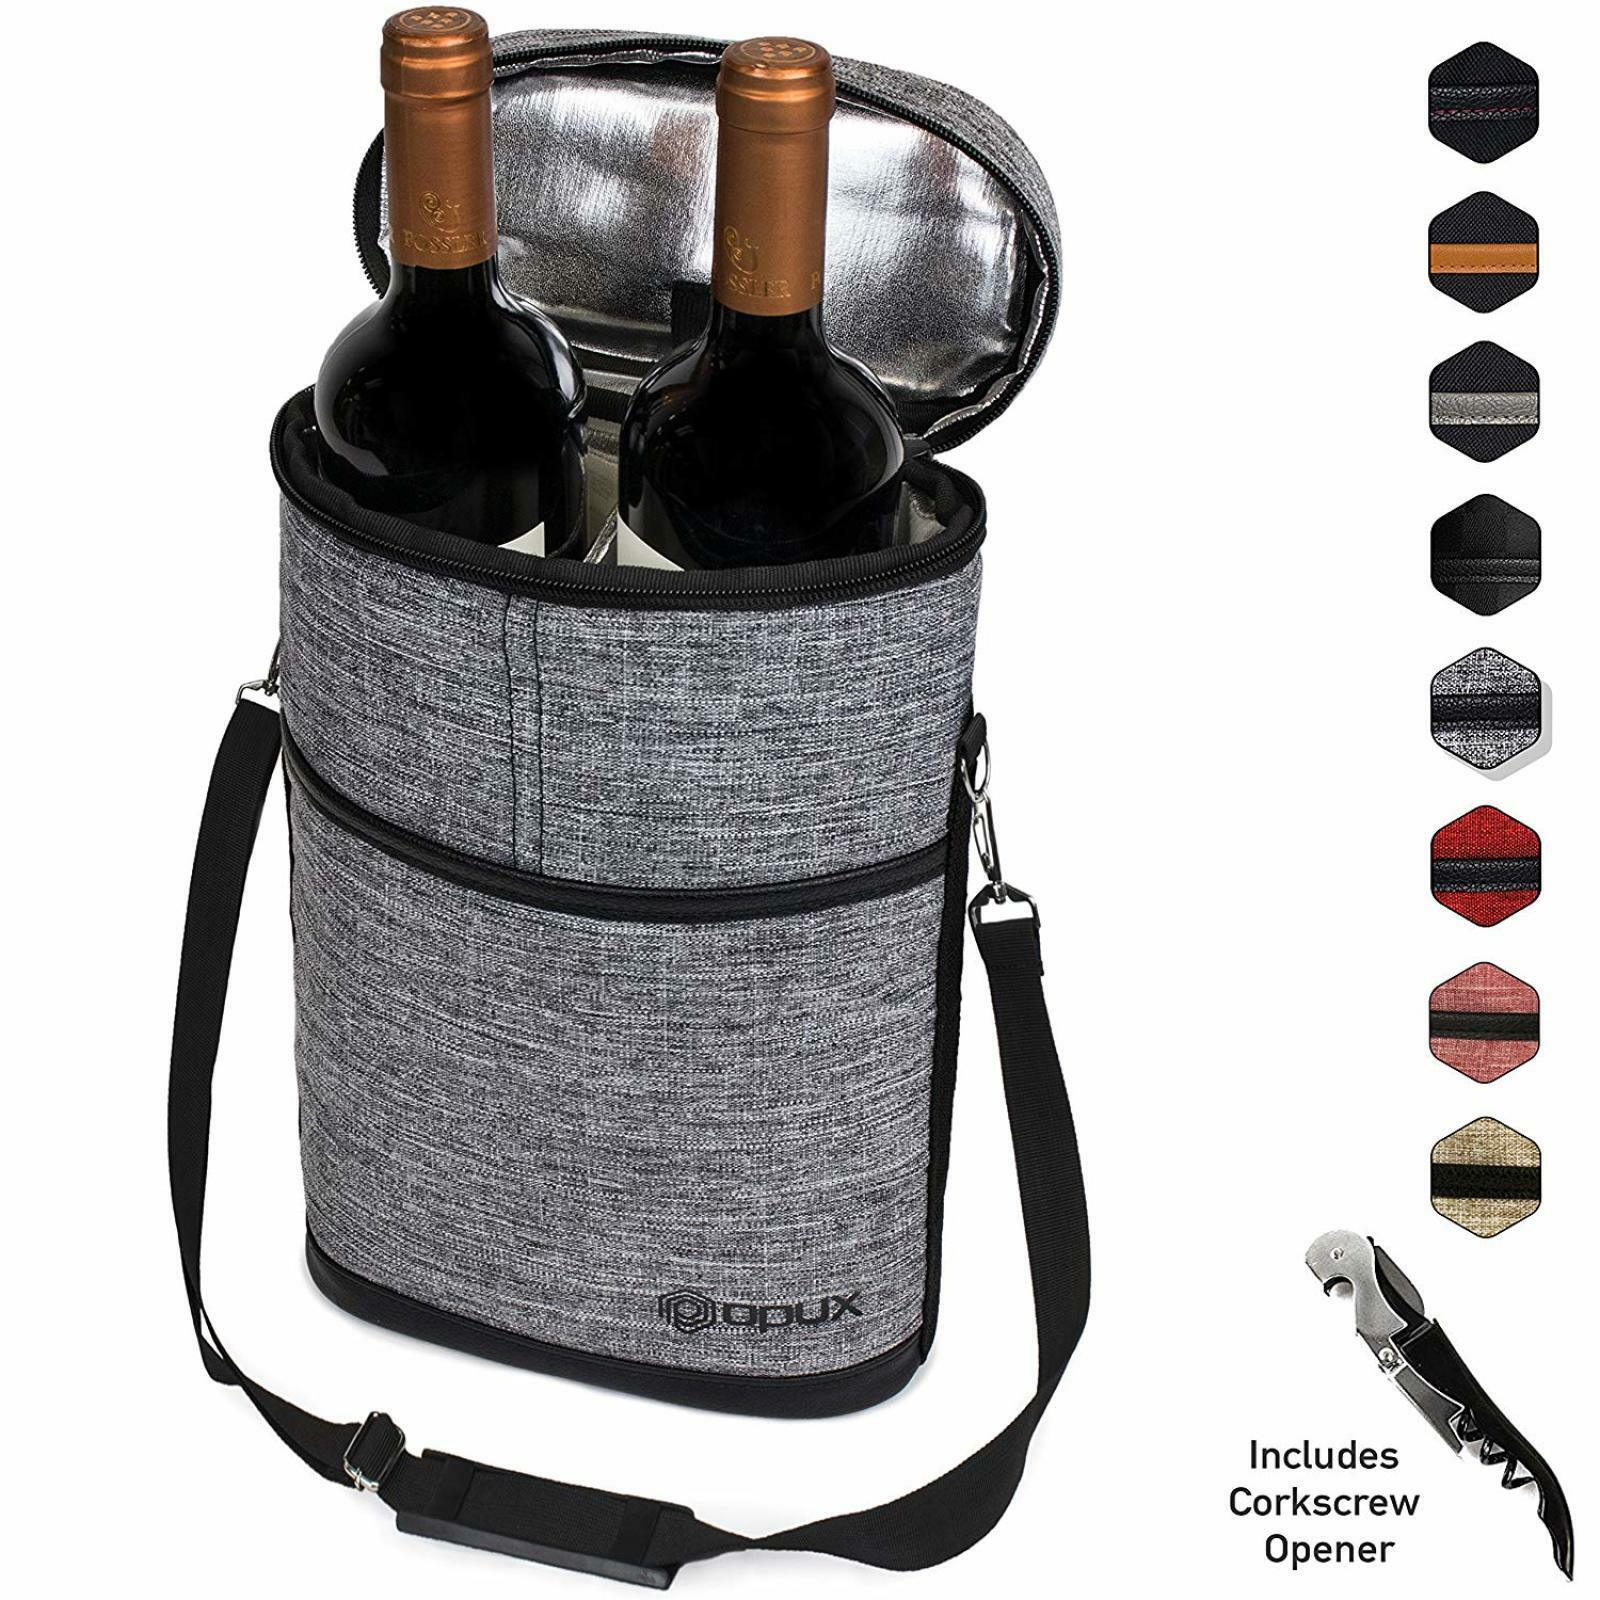 Details About 2 Bottle Wine Travel Bag Set Picnic Insulated Cooler Carrier Tote Luggage Case